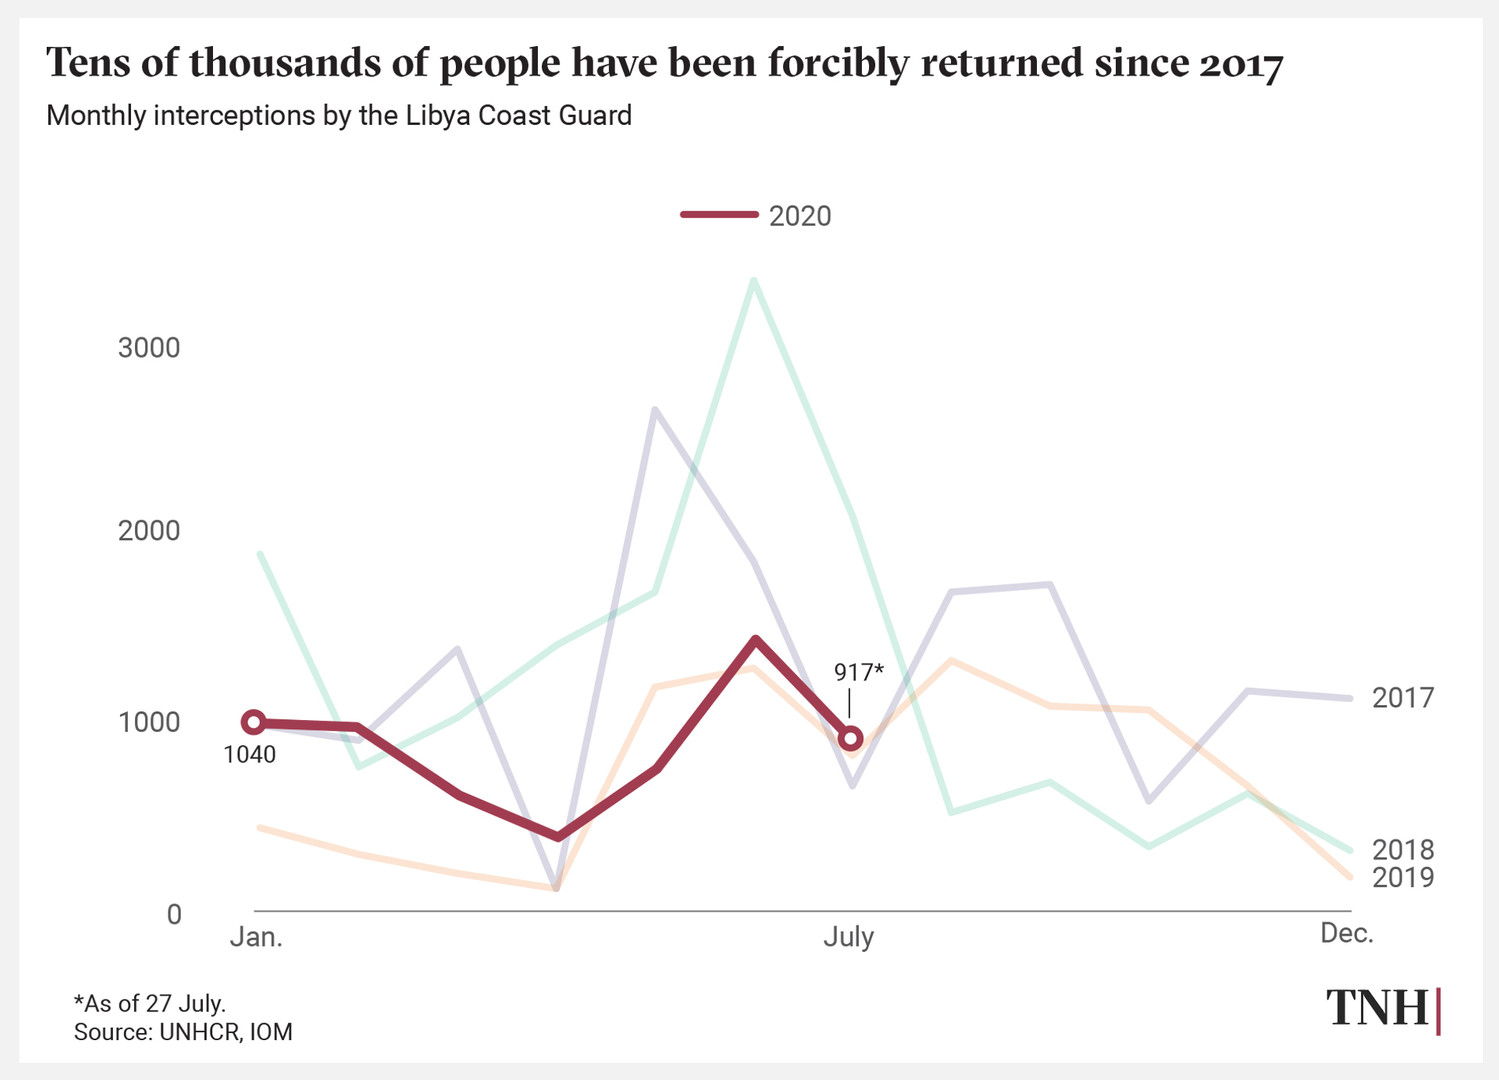 Tens of thousands of people have been forcibly returned since 2017